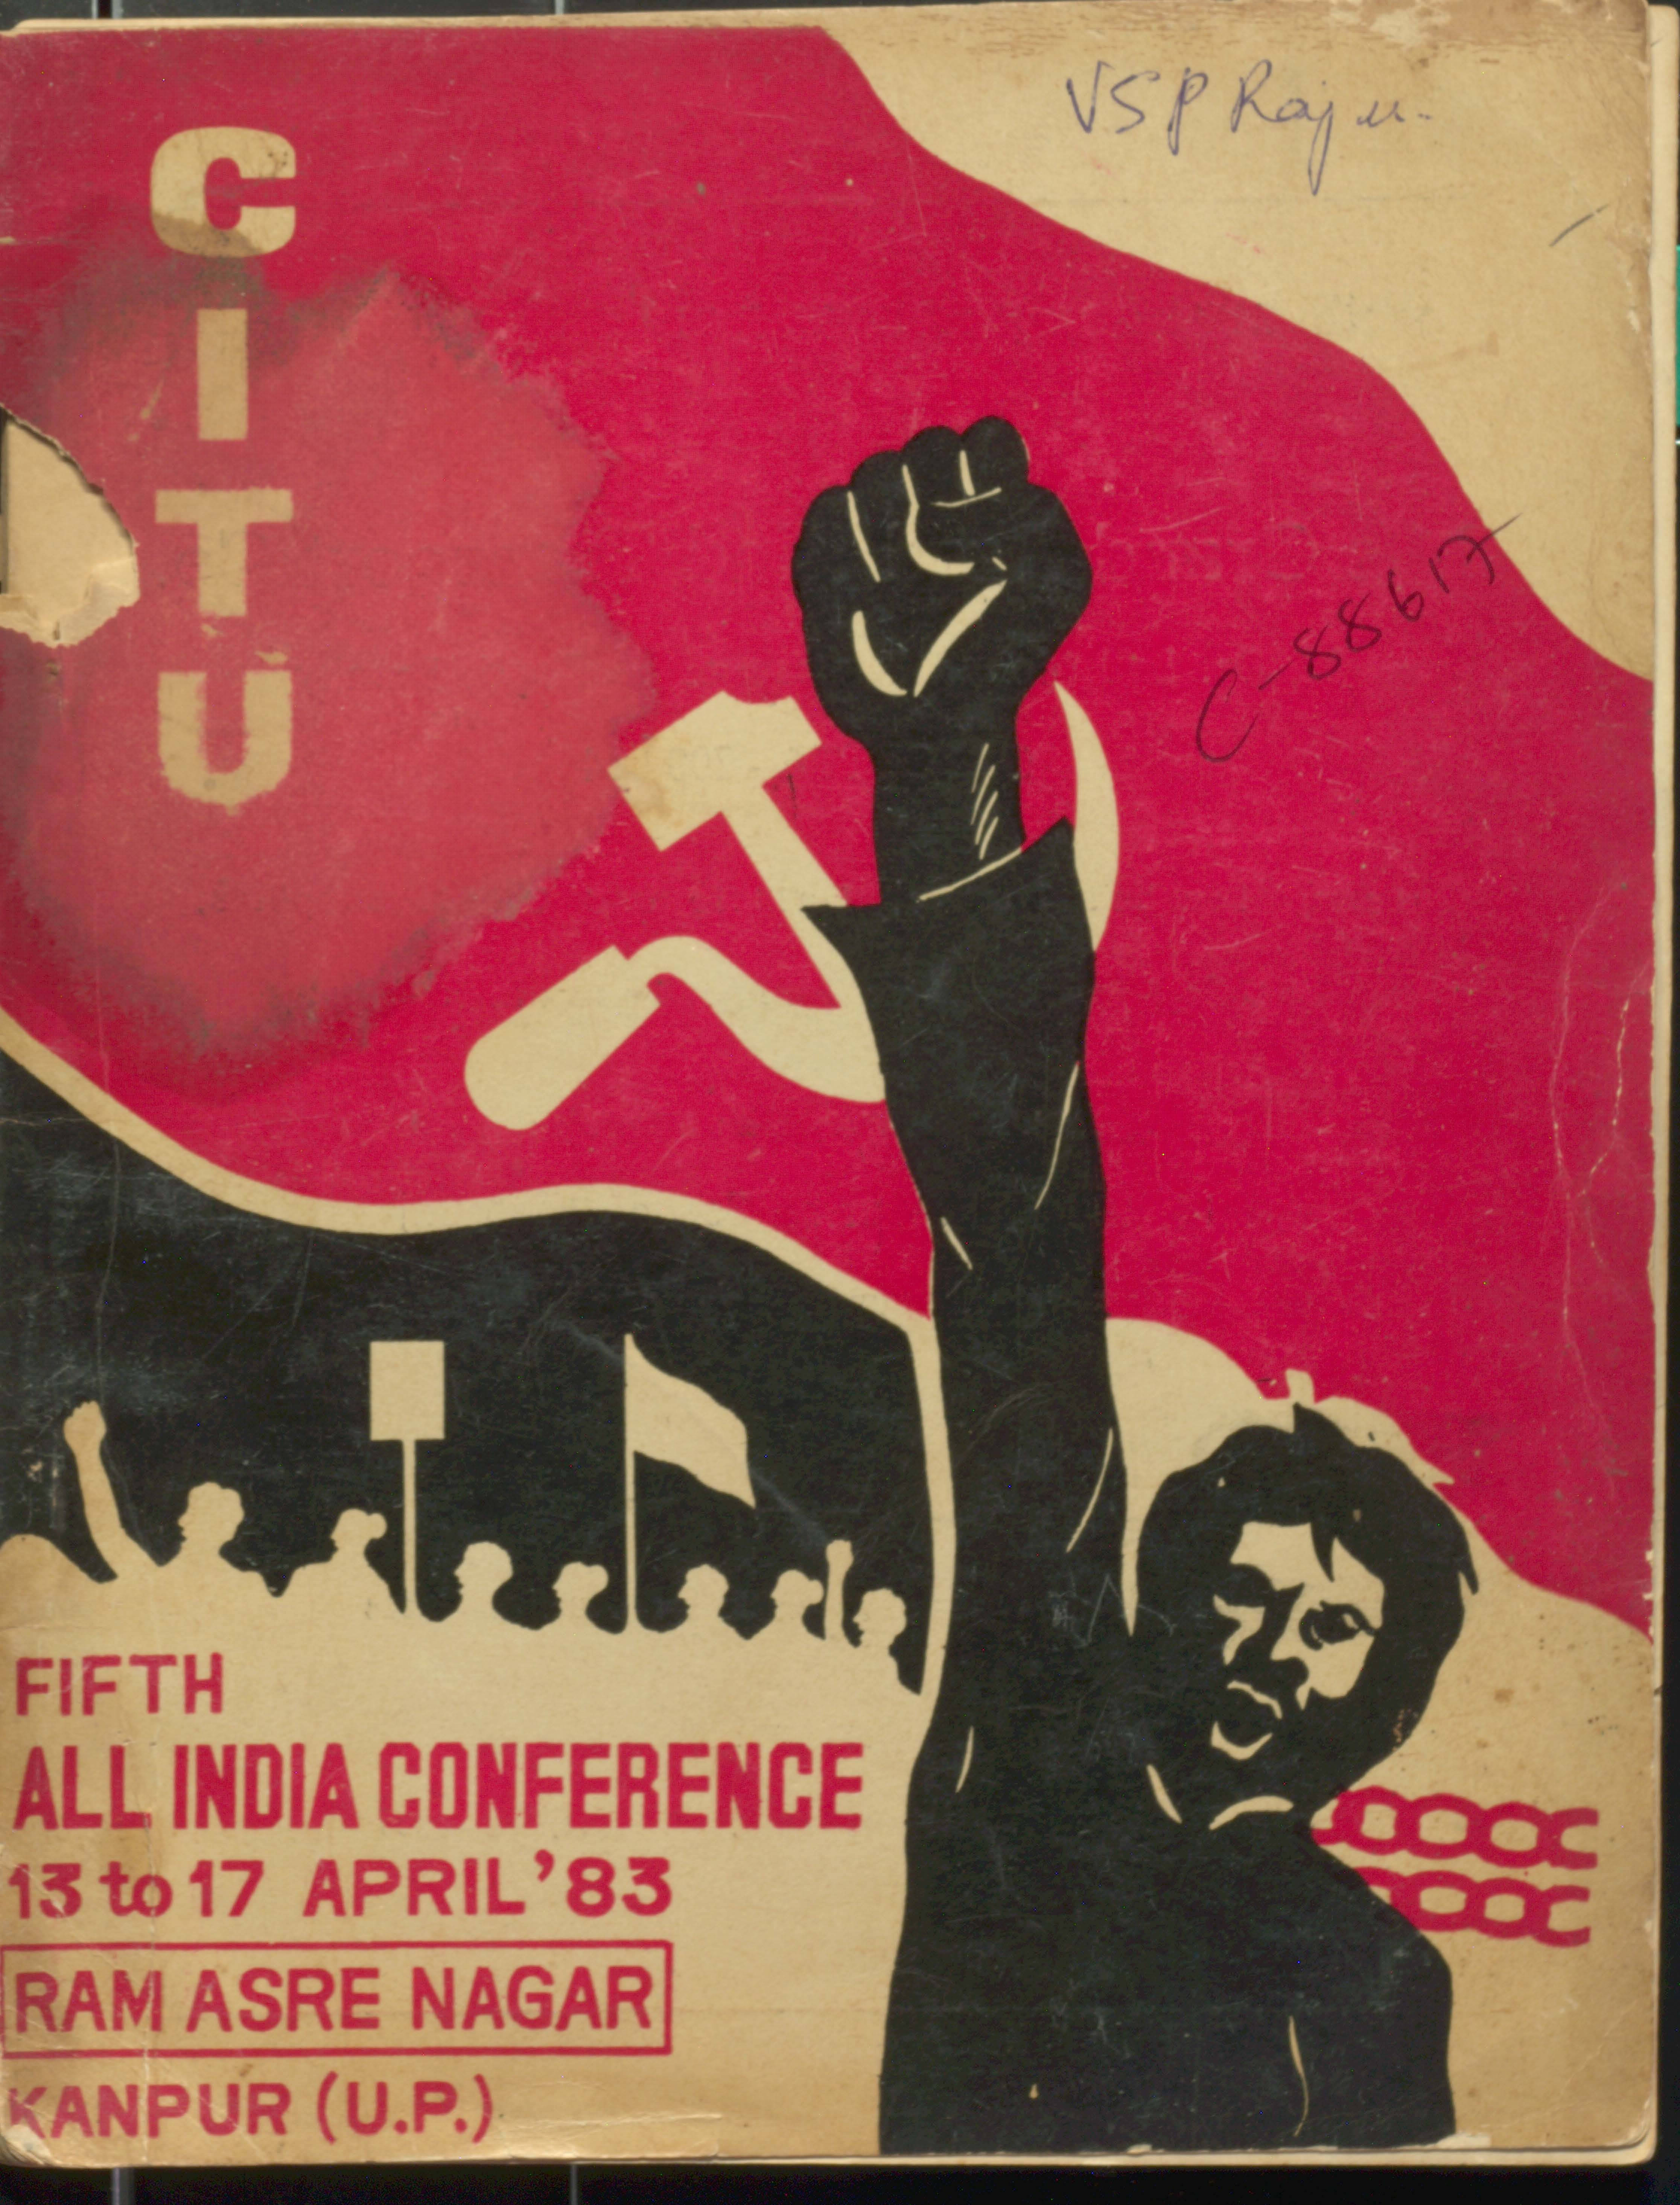 5th All India conference 13 to 17 April,1983